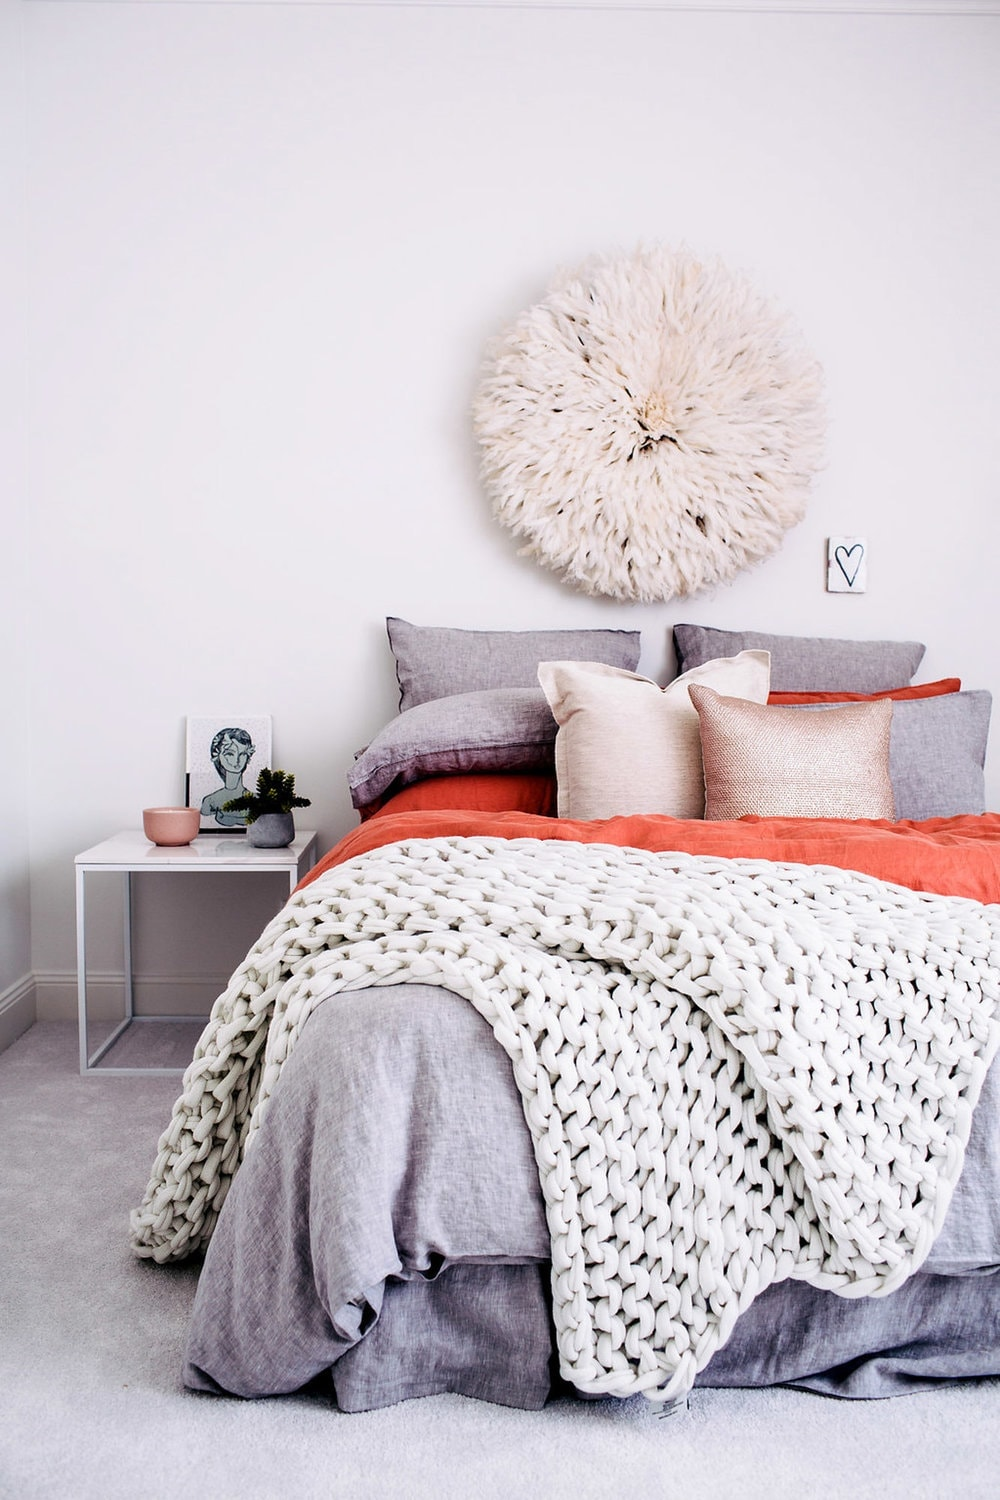 juju hat above bed with grey bedding and orange sheet set